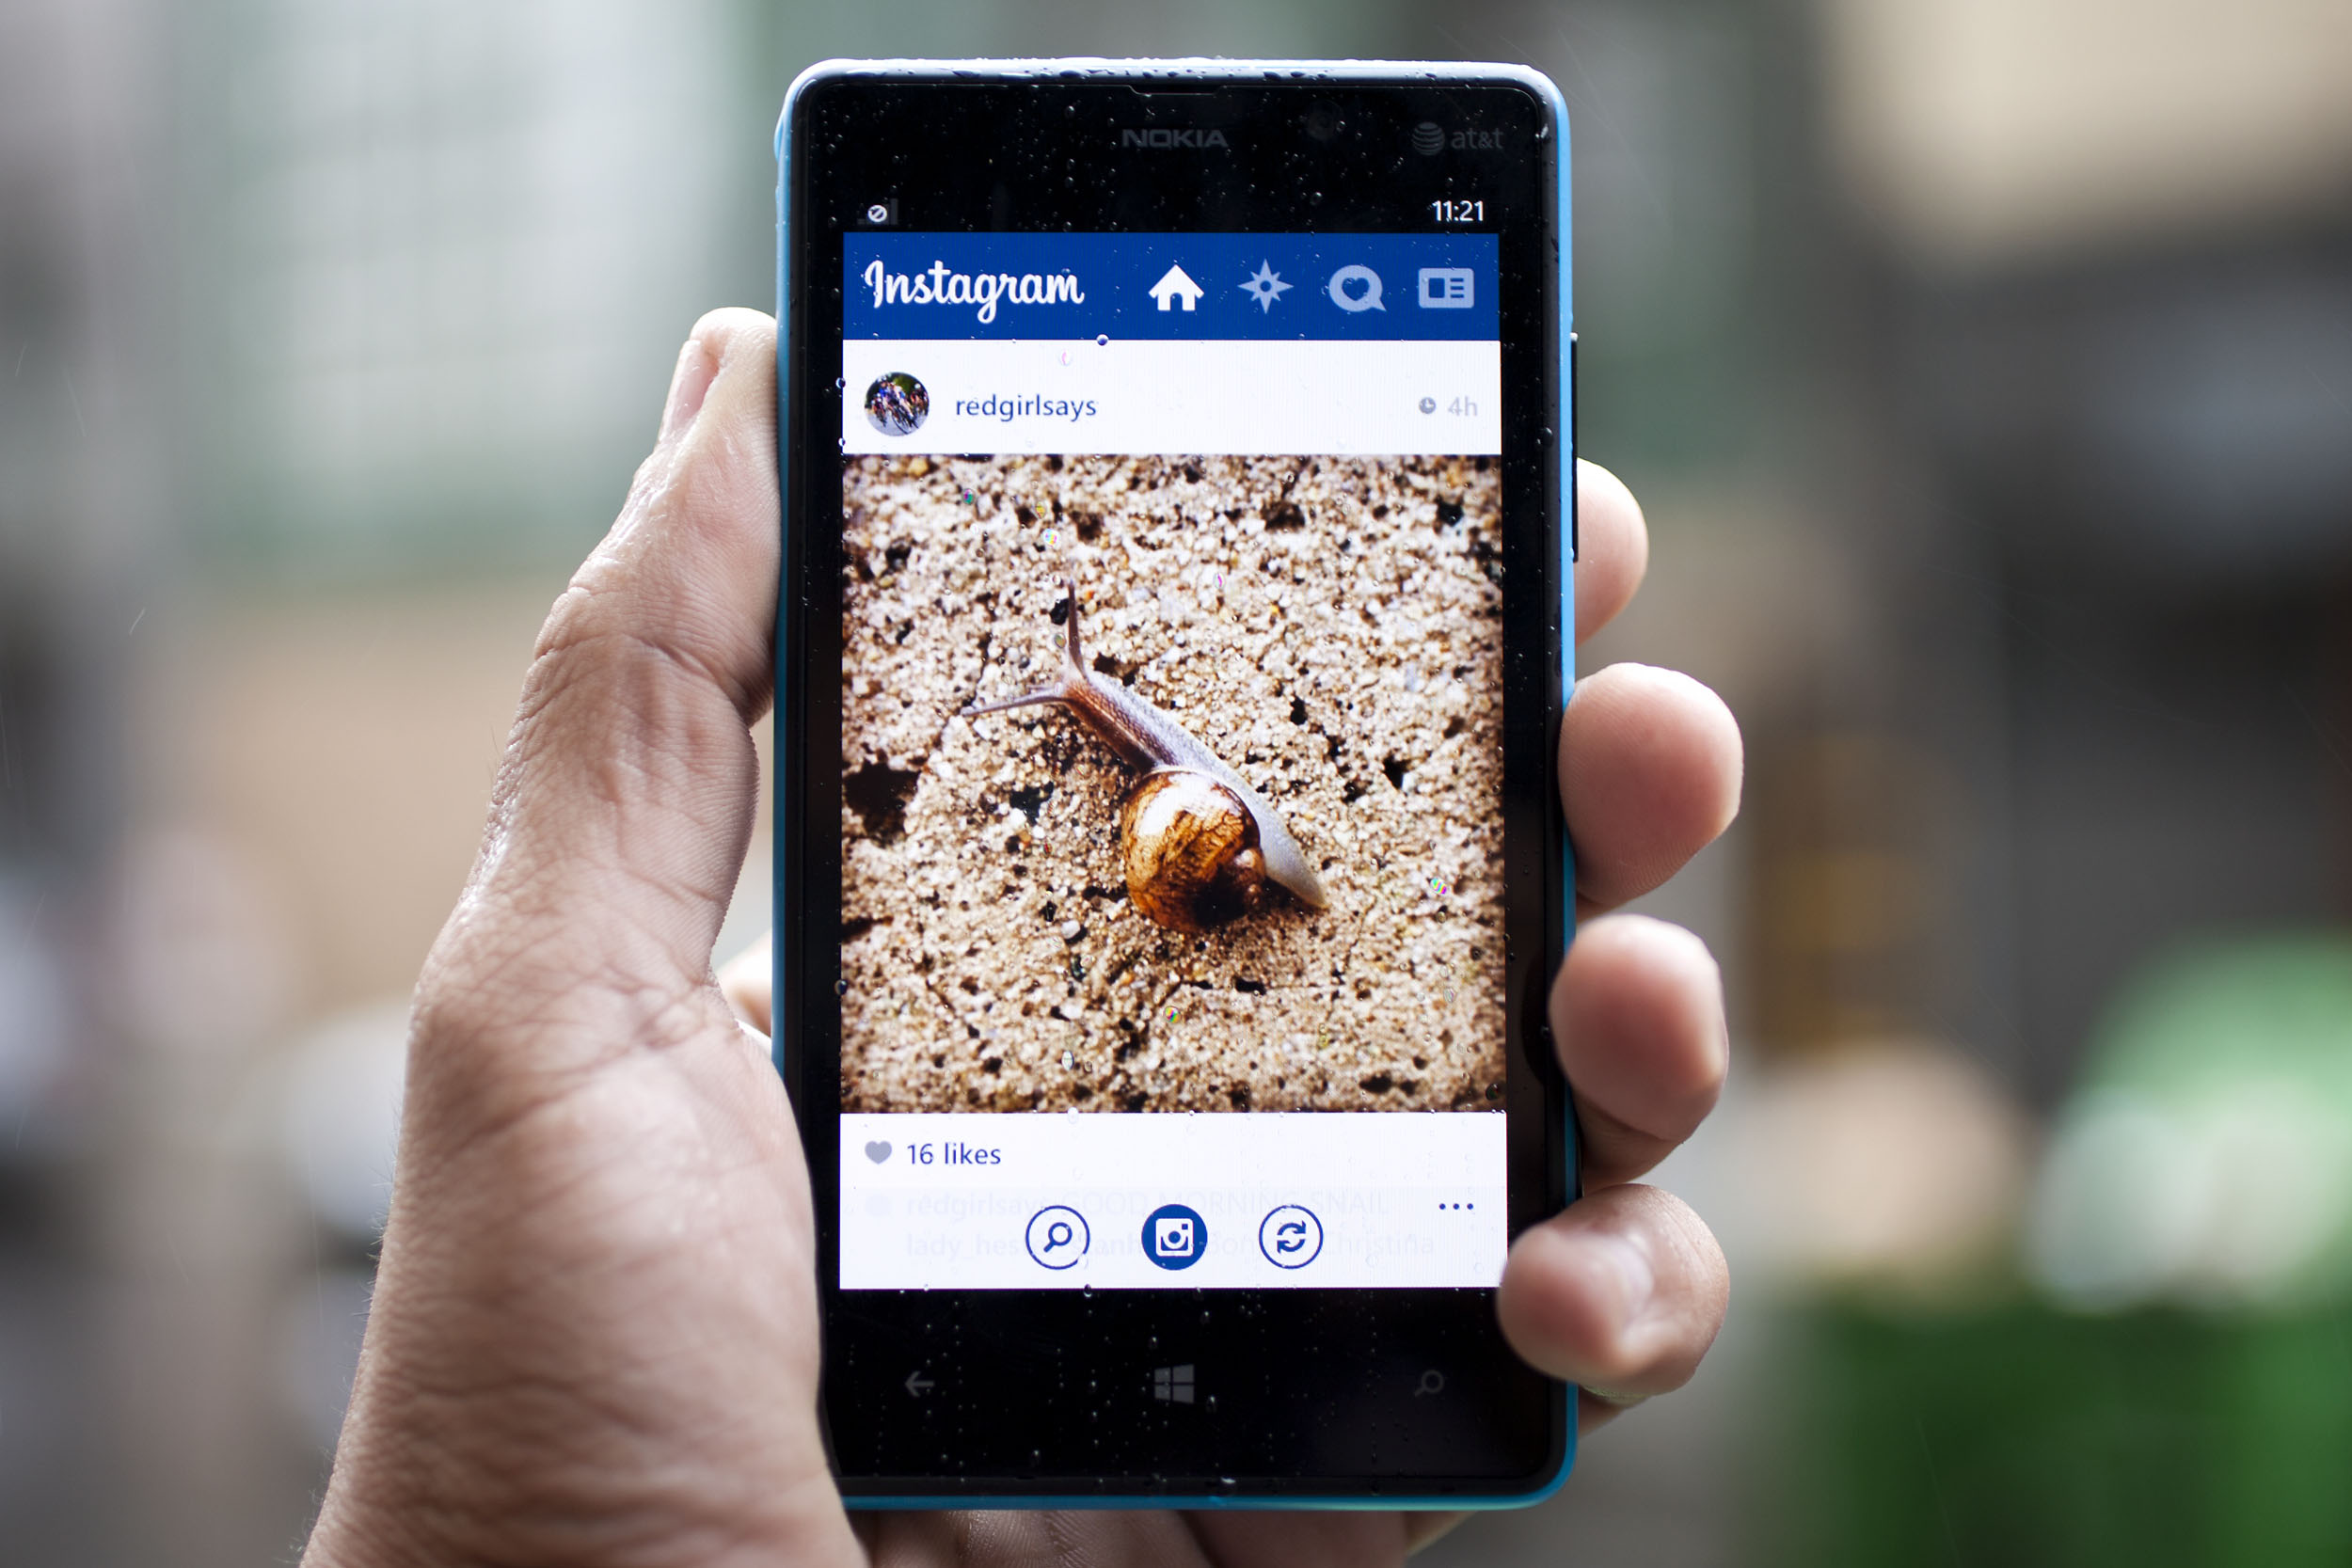 Tips for marketing your business on Instagram